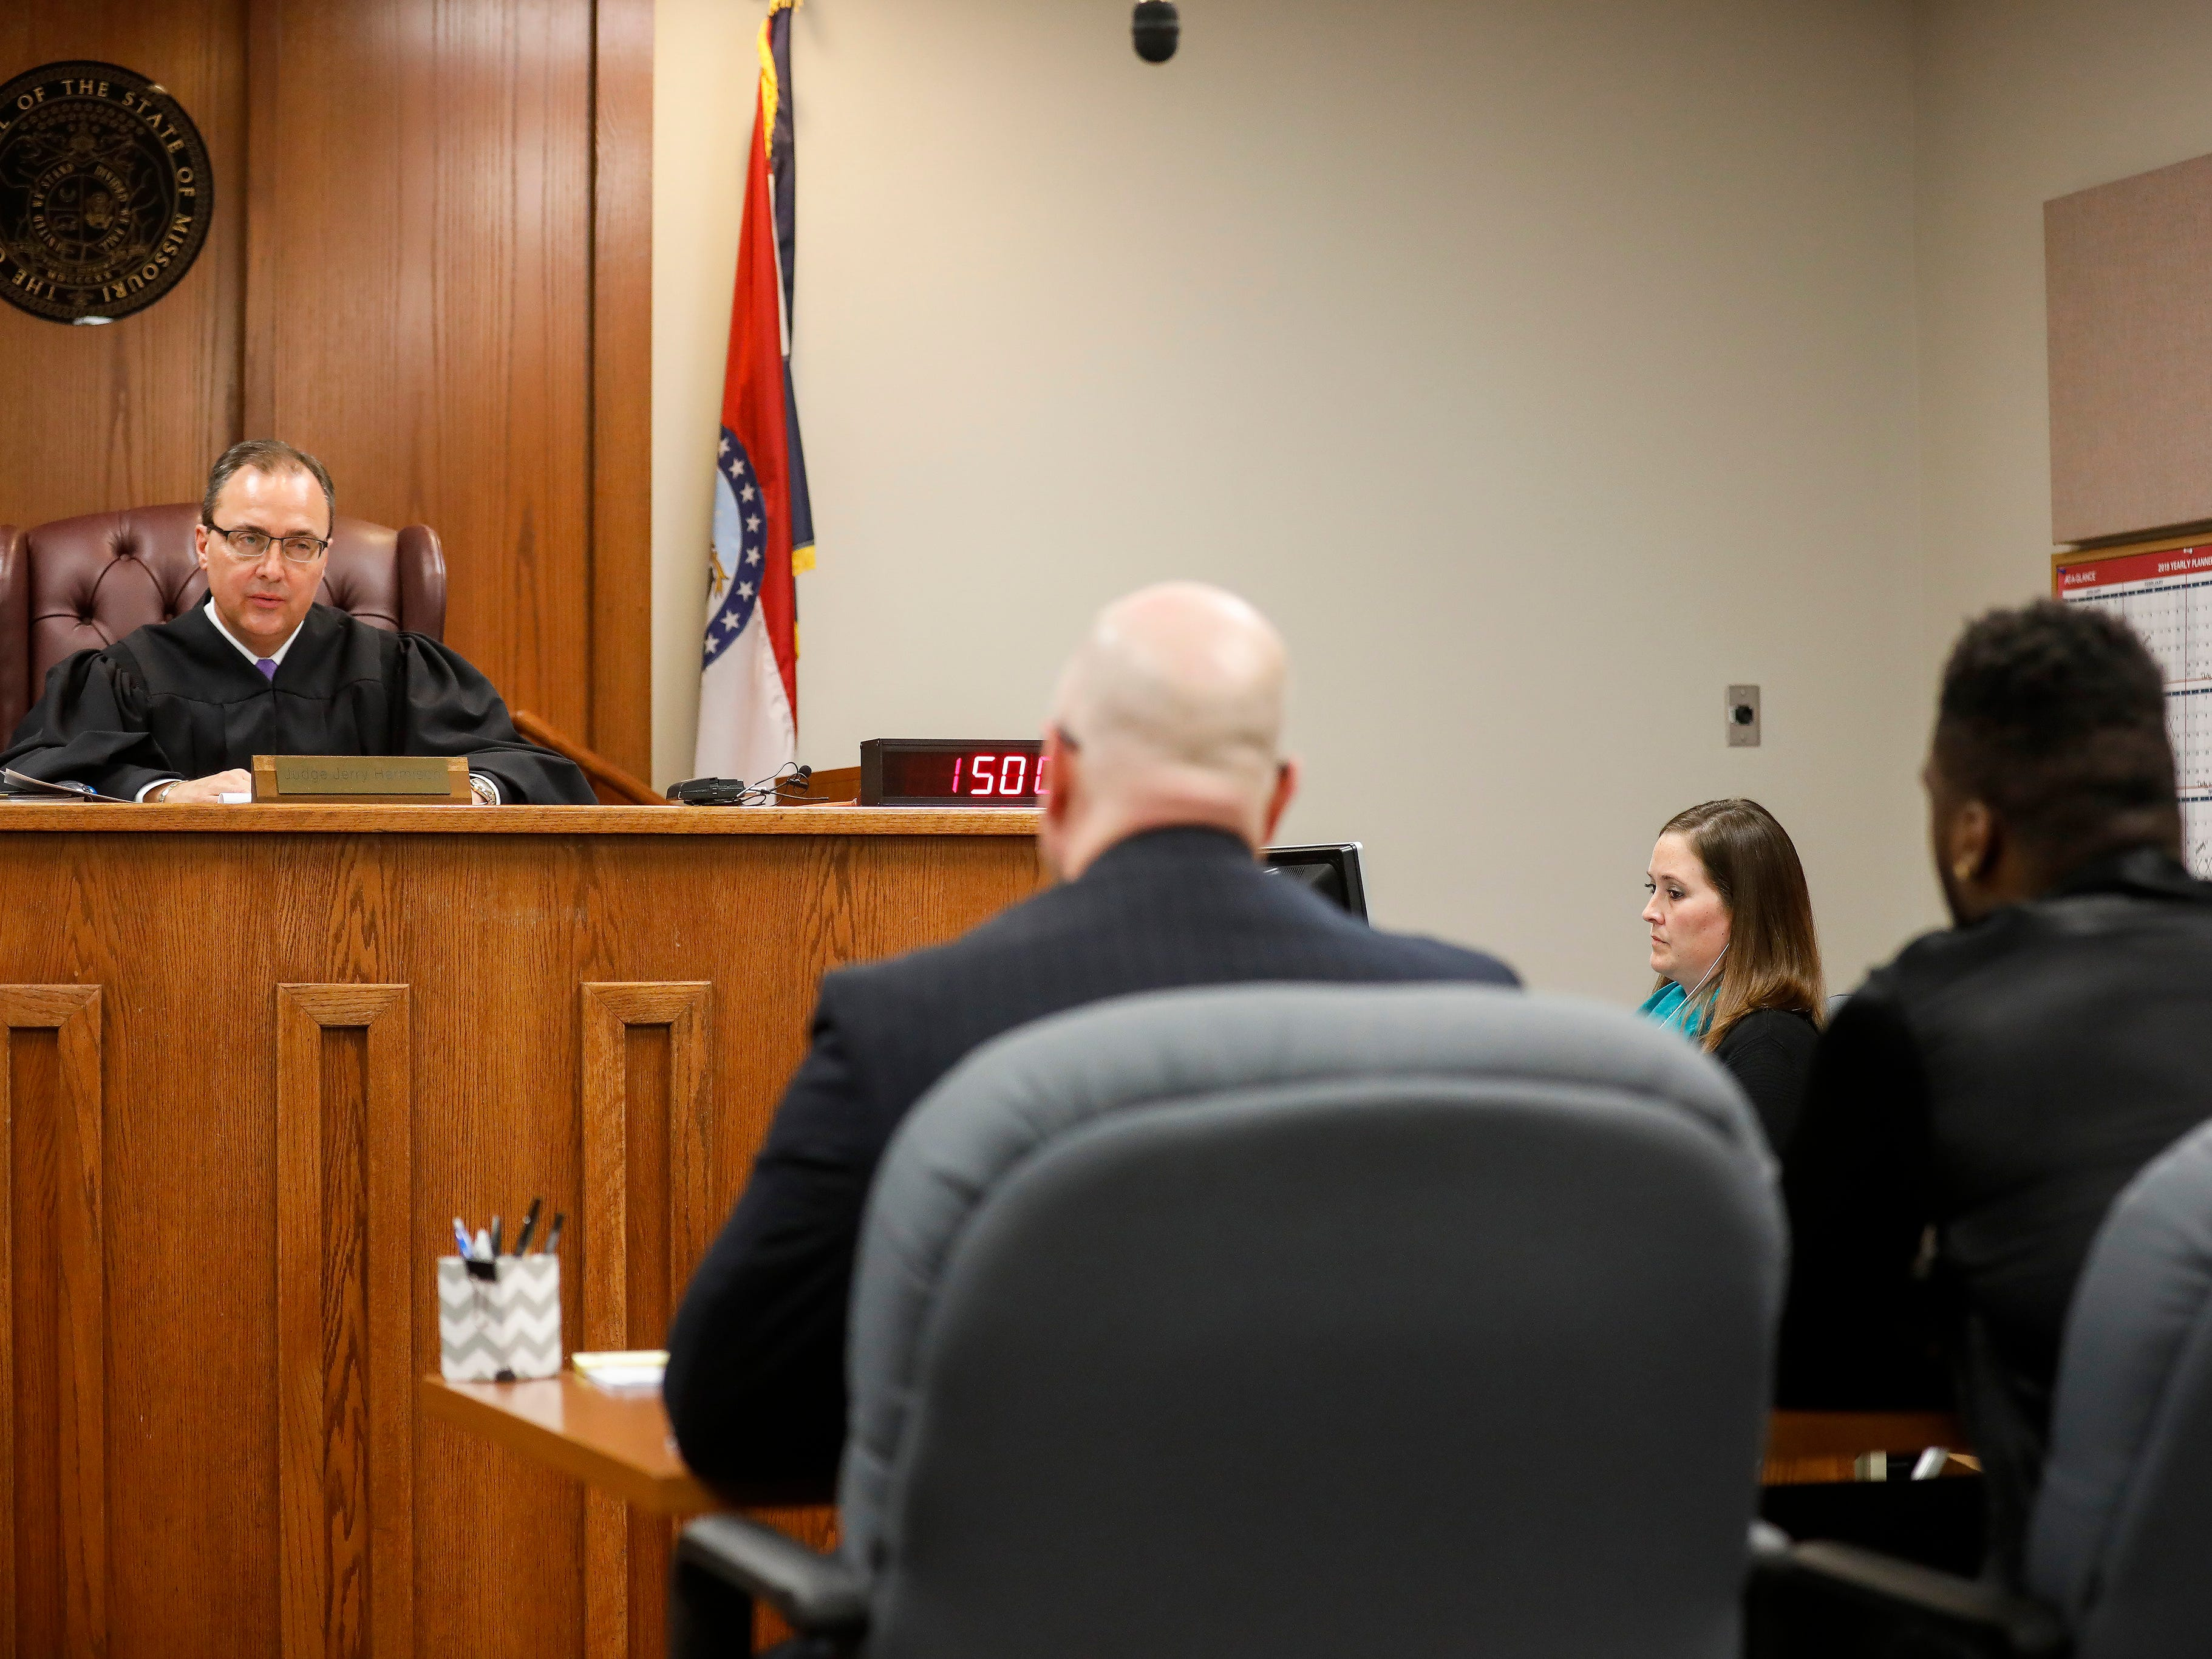 Judge Jerry Harmison delivers the sentence for Dorial Green-Beckham during a probation violation hearing in a prior DWI case on Friday, March 8, 2019.